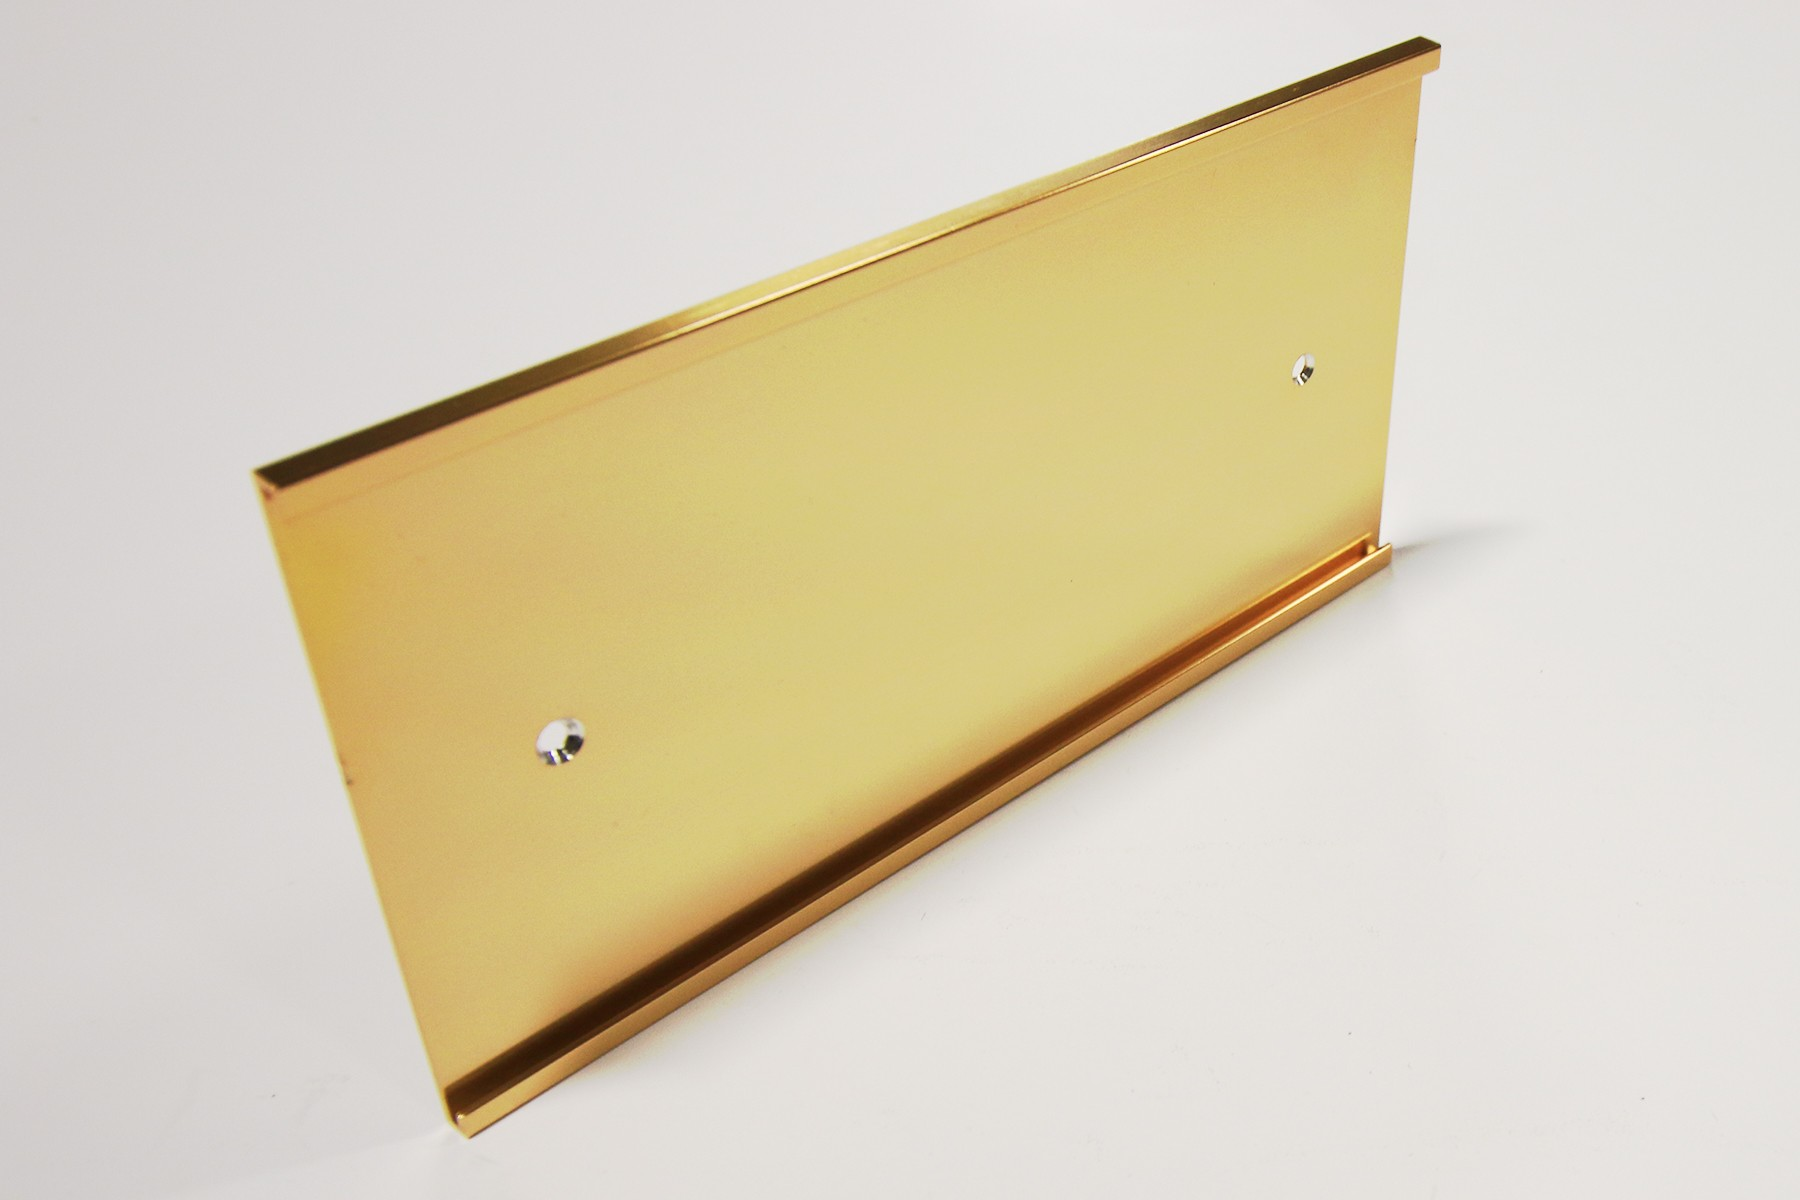 4 x 8 Wall Holder, Gold